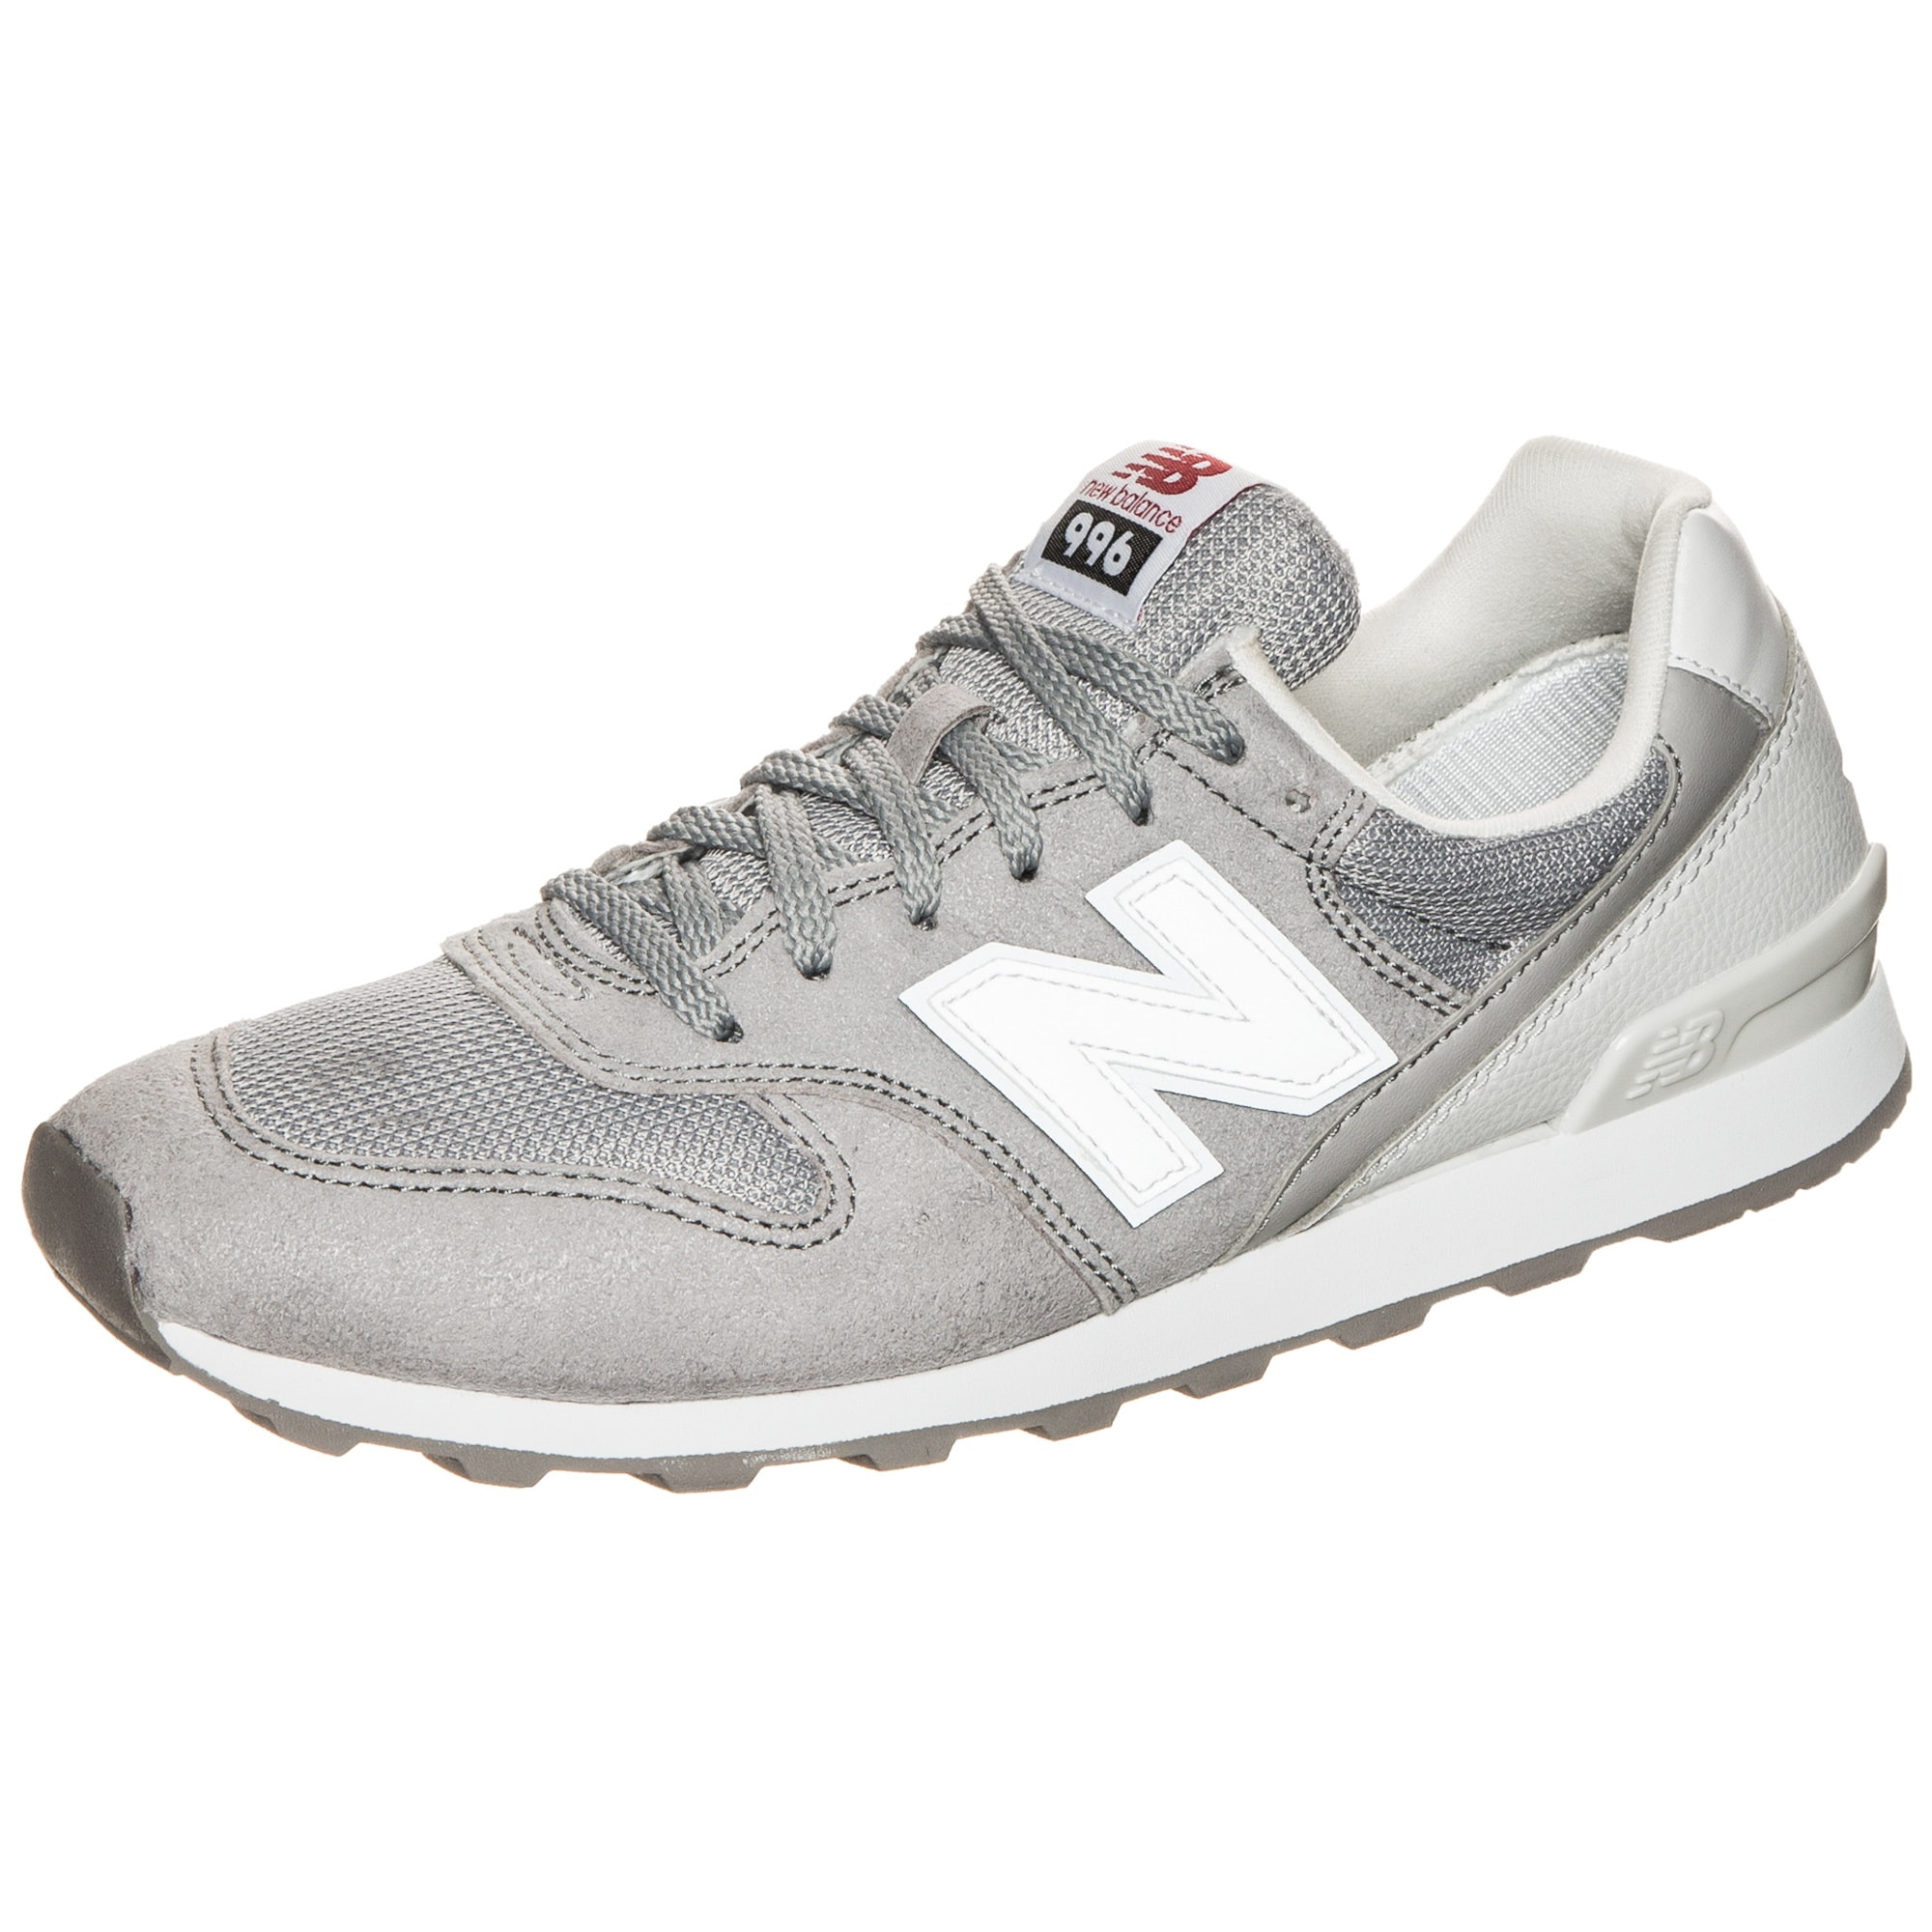 New Balance, Dames Sneakers laag 'WR996-HS', grijs / wit